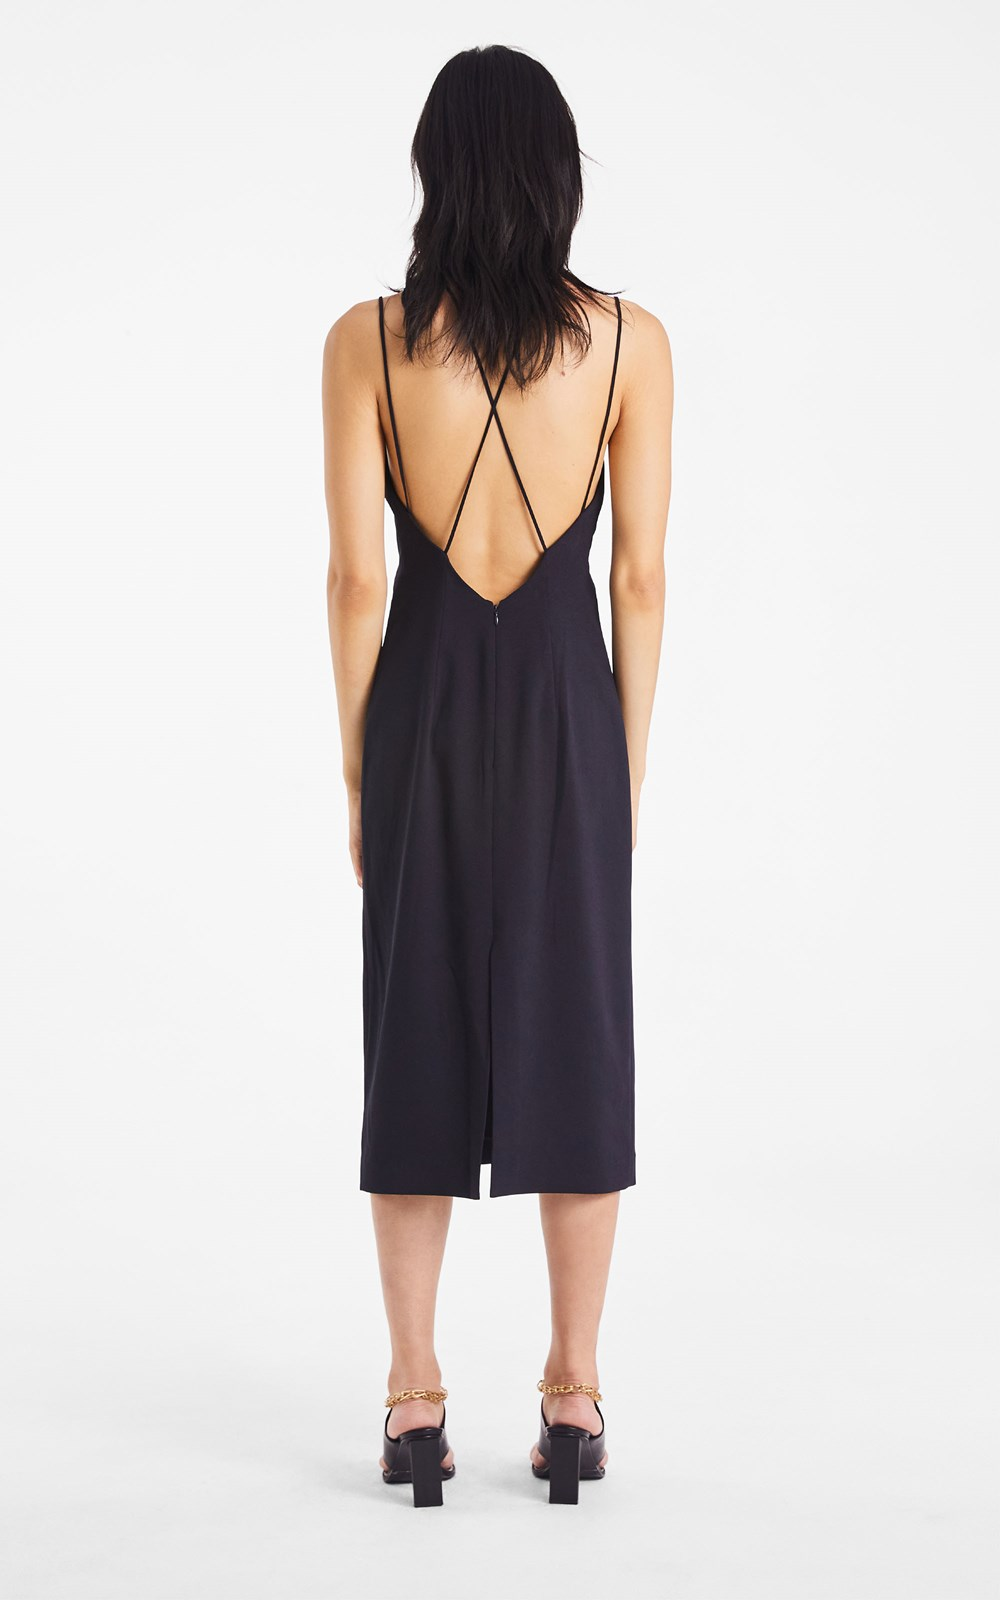 Dresses  | WHITEWASH LINK SLIP DRESS